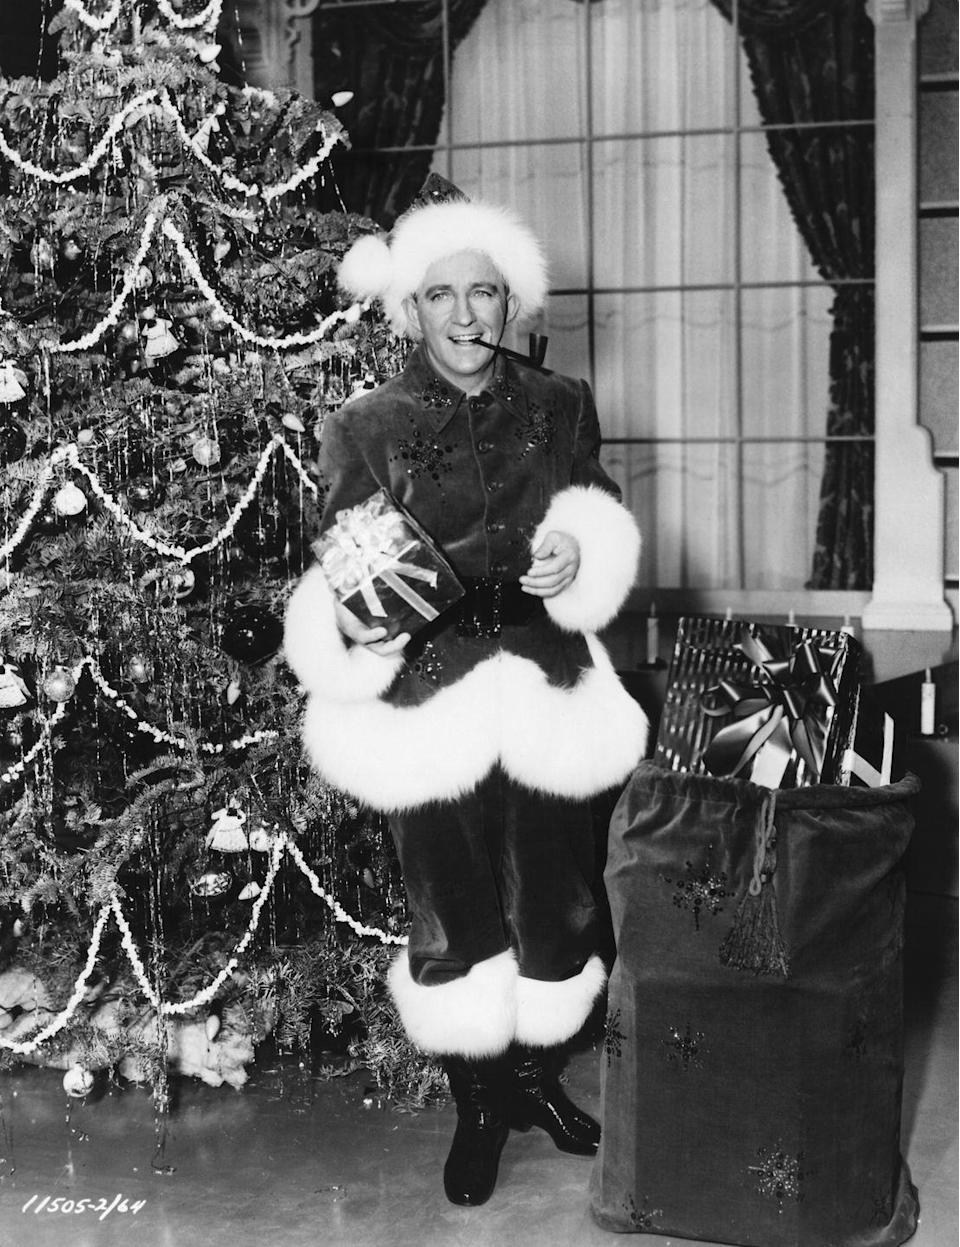 "<p>You can bet it'll be a good day when Bing Crosby puts on a Santa suit. The famous ""White Christmas"" crooner dressed the part for a promotional shoot in 1954. </p><p><strong>RELATED:</strong> <a href=""https://www.goodhousekeeping.com/holidays/christmas-ideas/g2997/white-christmas-movie-facts/"" rel=""nofollow noopener"" target=""_blank"" data-ylk=""slk:25 Surprising Things About 'White Christmas' That Even Movie Buffs Don't Know"" class=""link rapid-noclick-resp"">25 Surprising Things About 'White Christmas' That Even Movie Buffs Don't Know</a></p>"